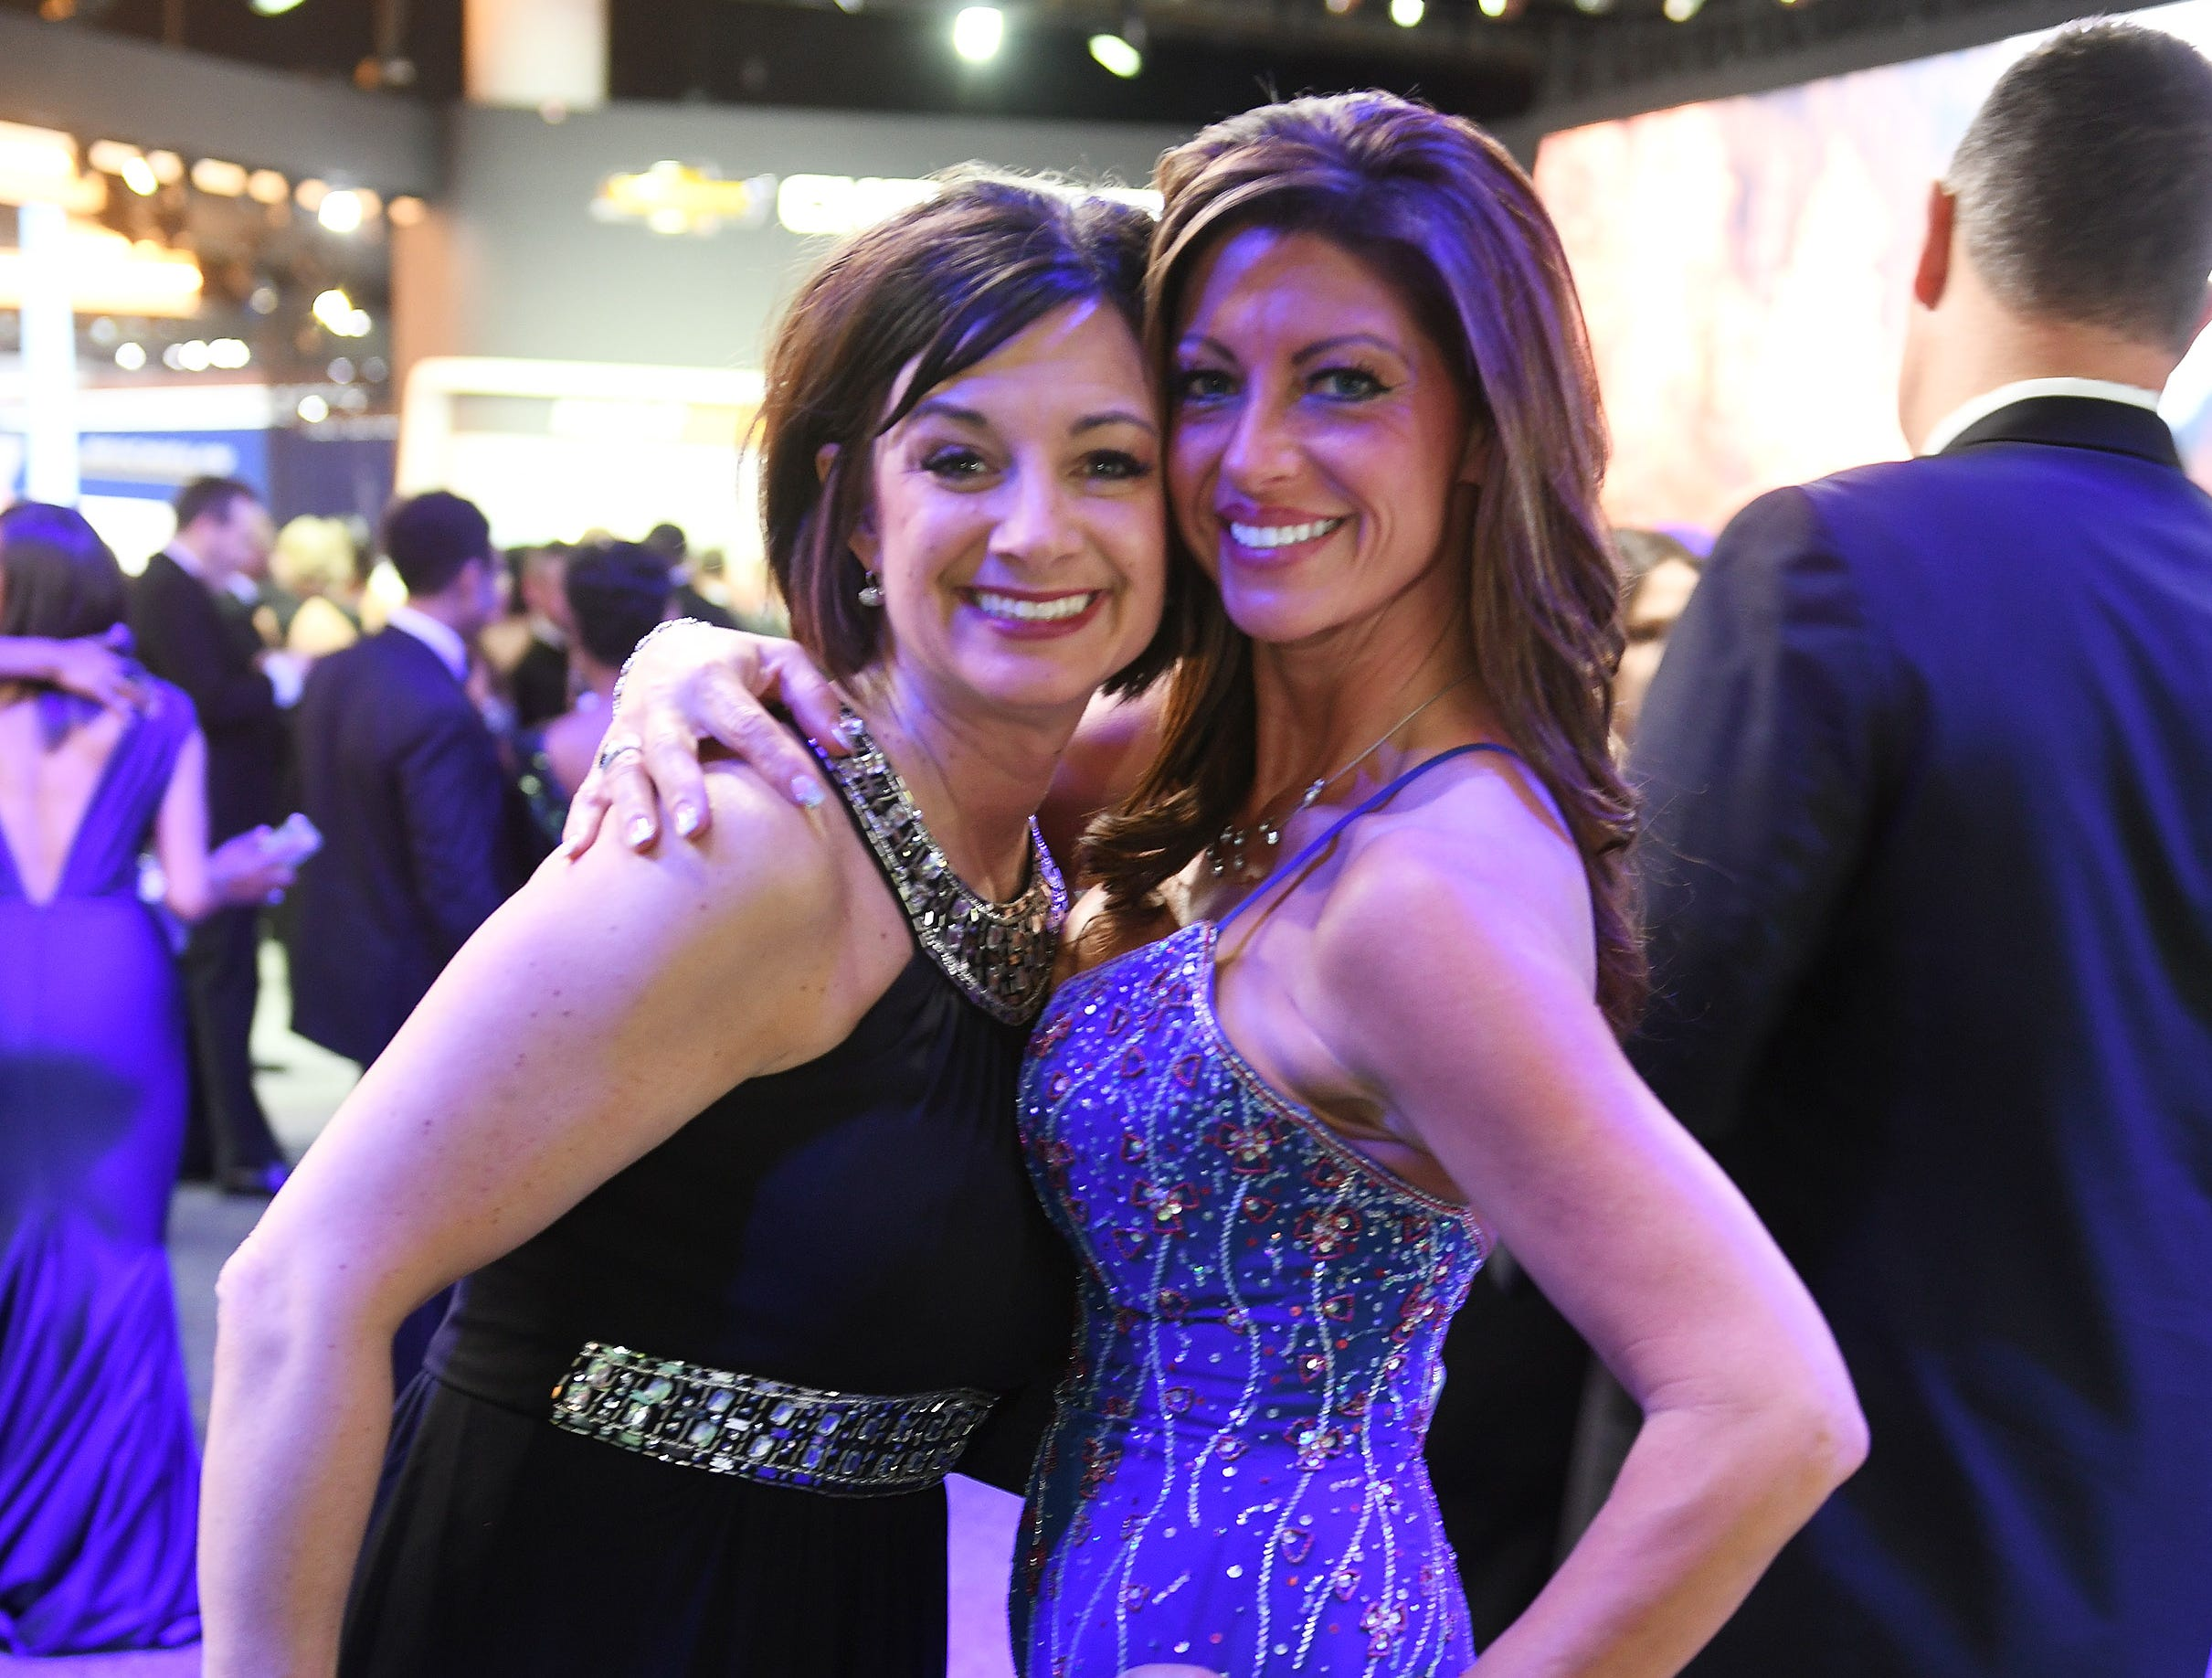 Bobbi Jo Lucas of Howell and Jennifer Kaluza of Trenton, right, smile for the camera at the Ford exhibit.